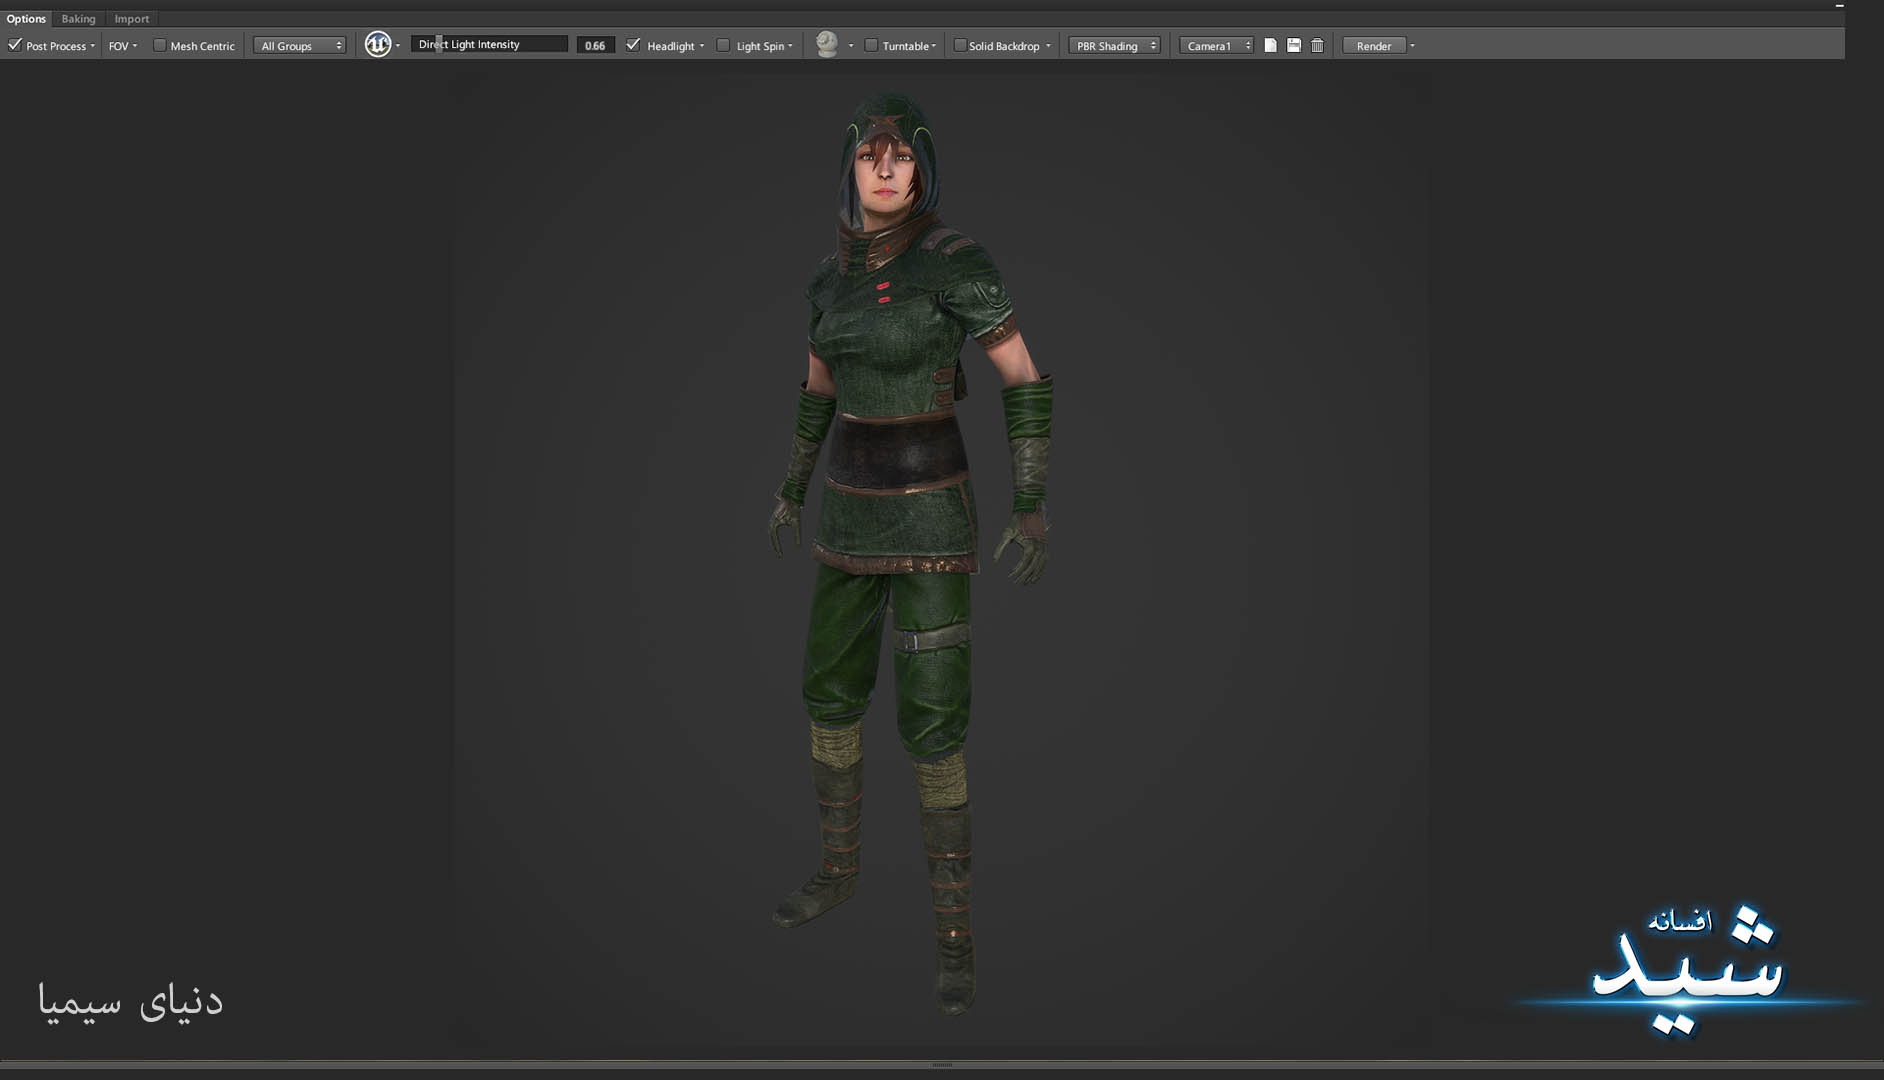 Legend of the light_Archer Character Texturing_Hadi Beheshti CG Artist Game Designer-2